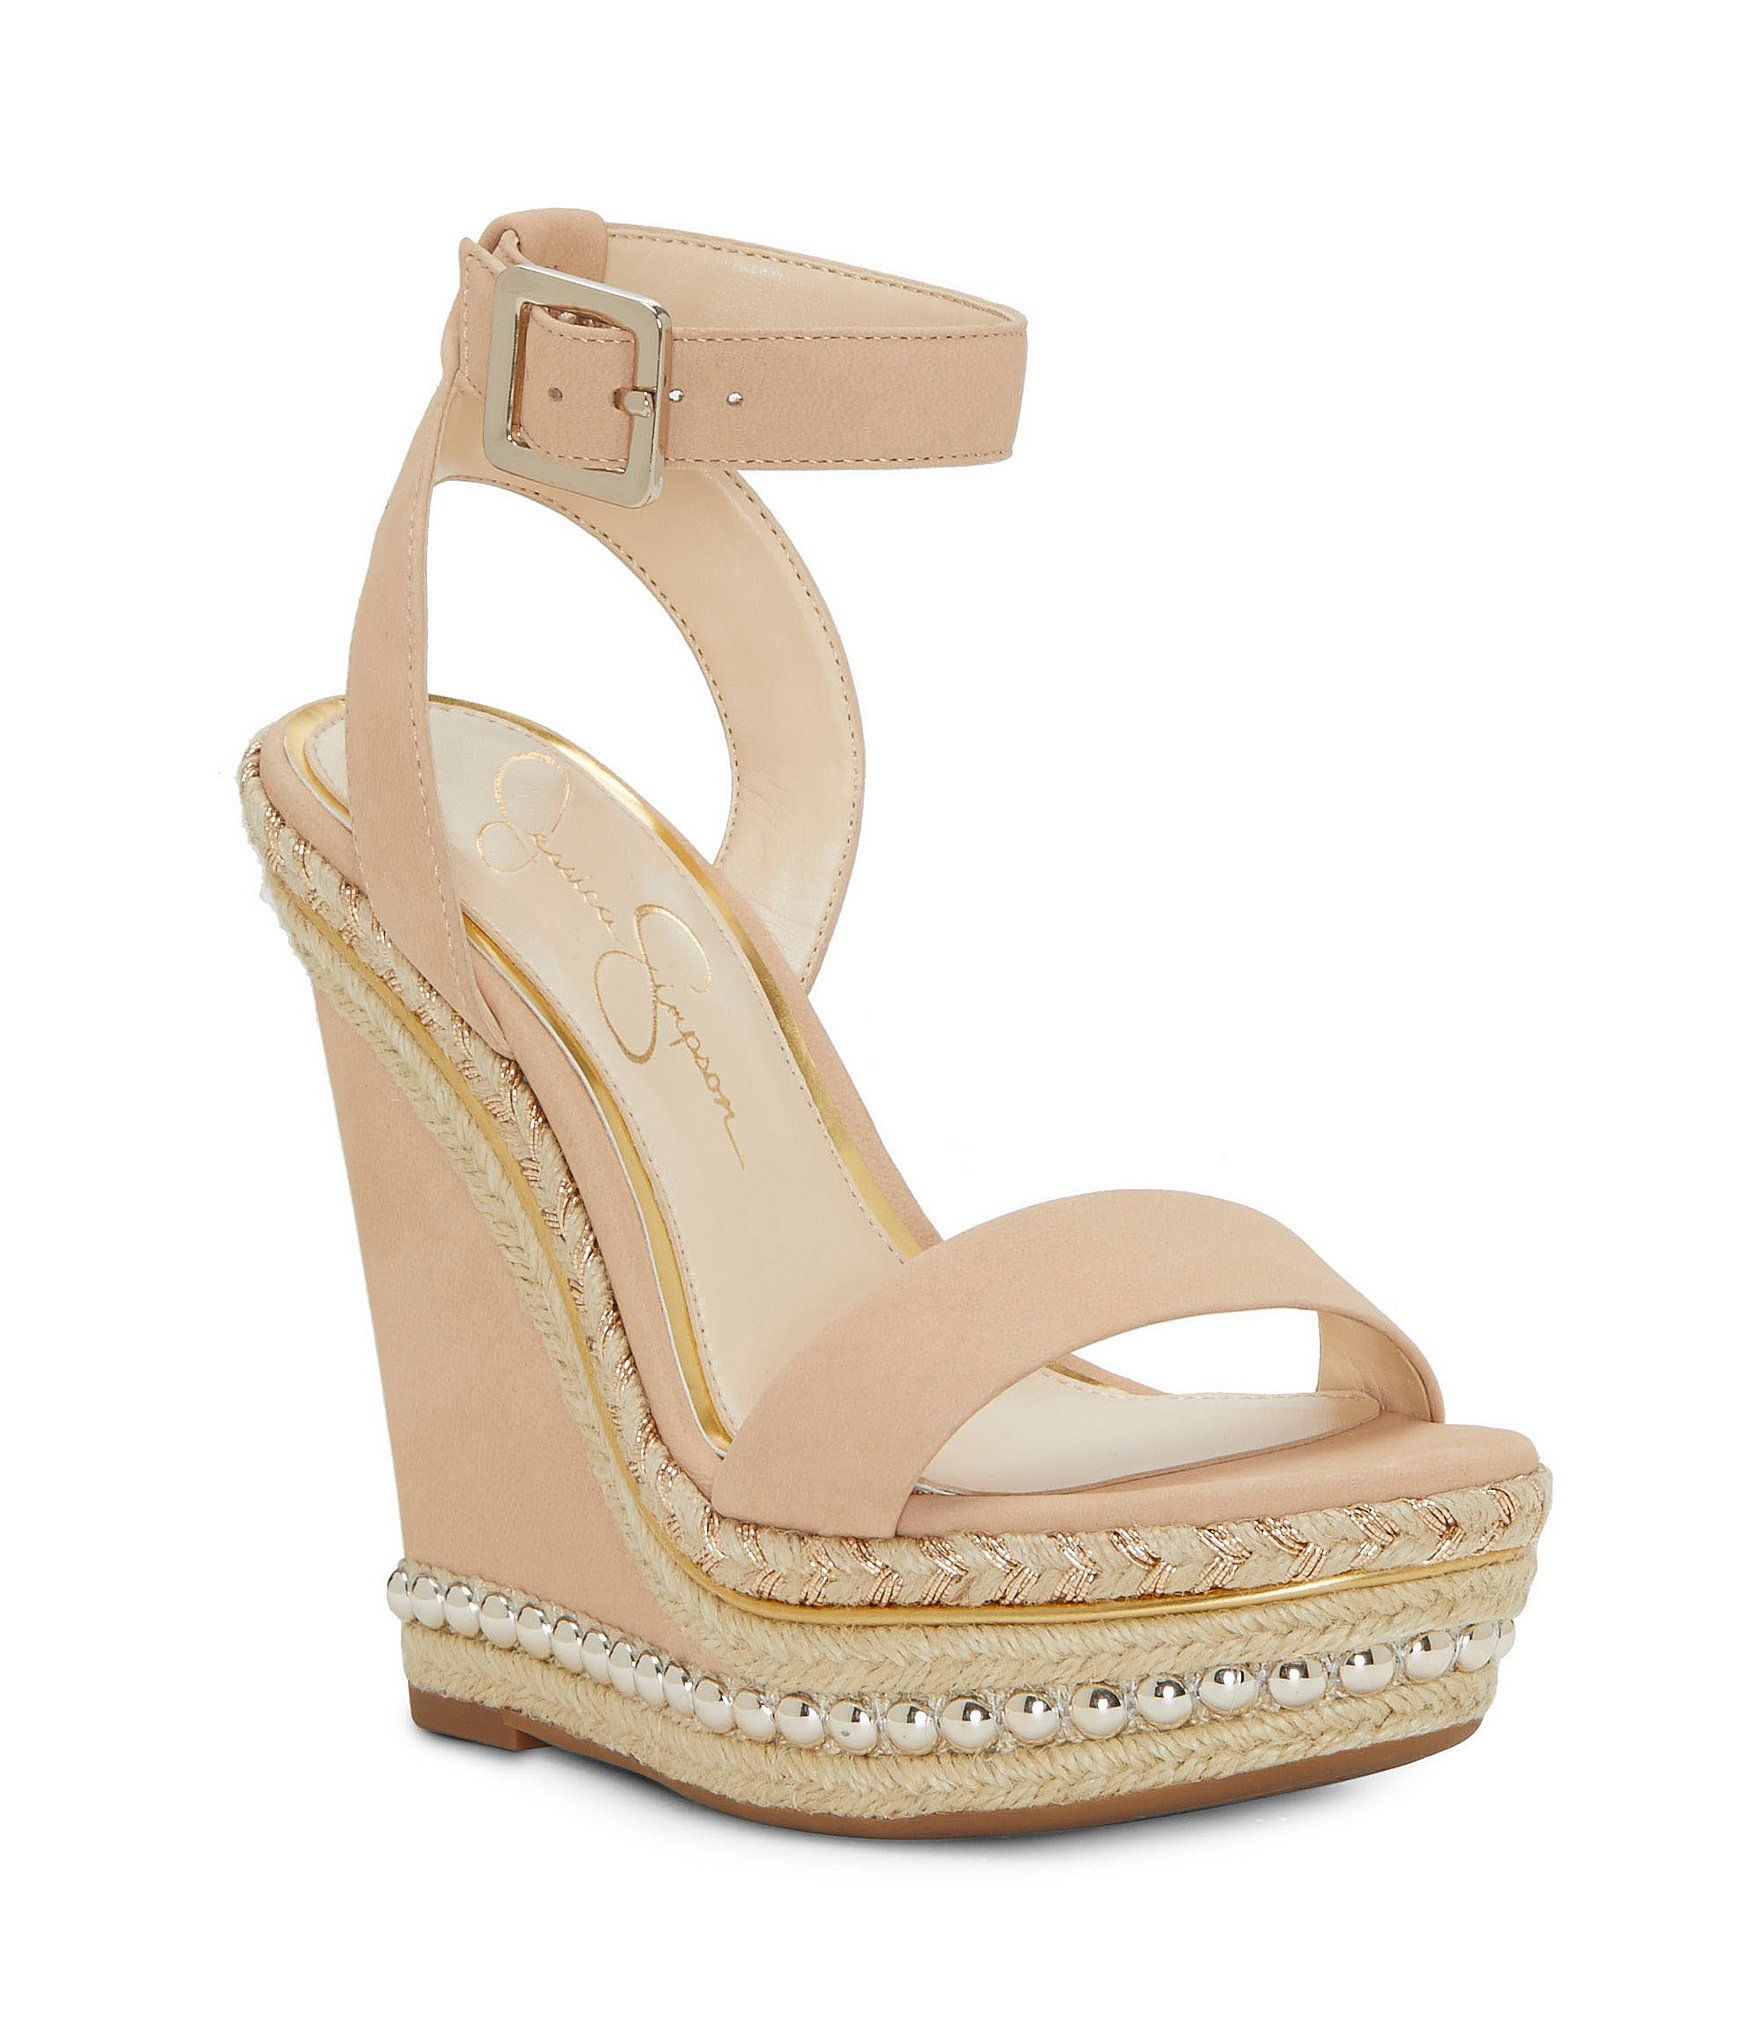 8e359df4a0b0 Jessica Simpson Avey Stud and Braided Detail Platform Wedge Sandals   Dillards